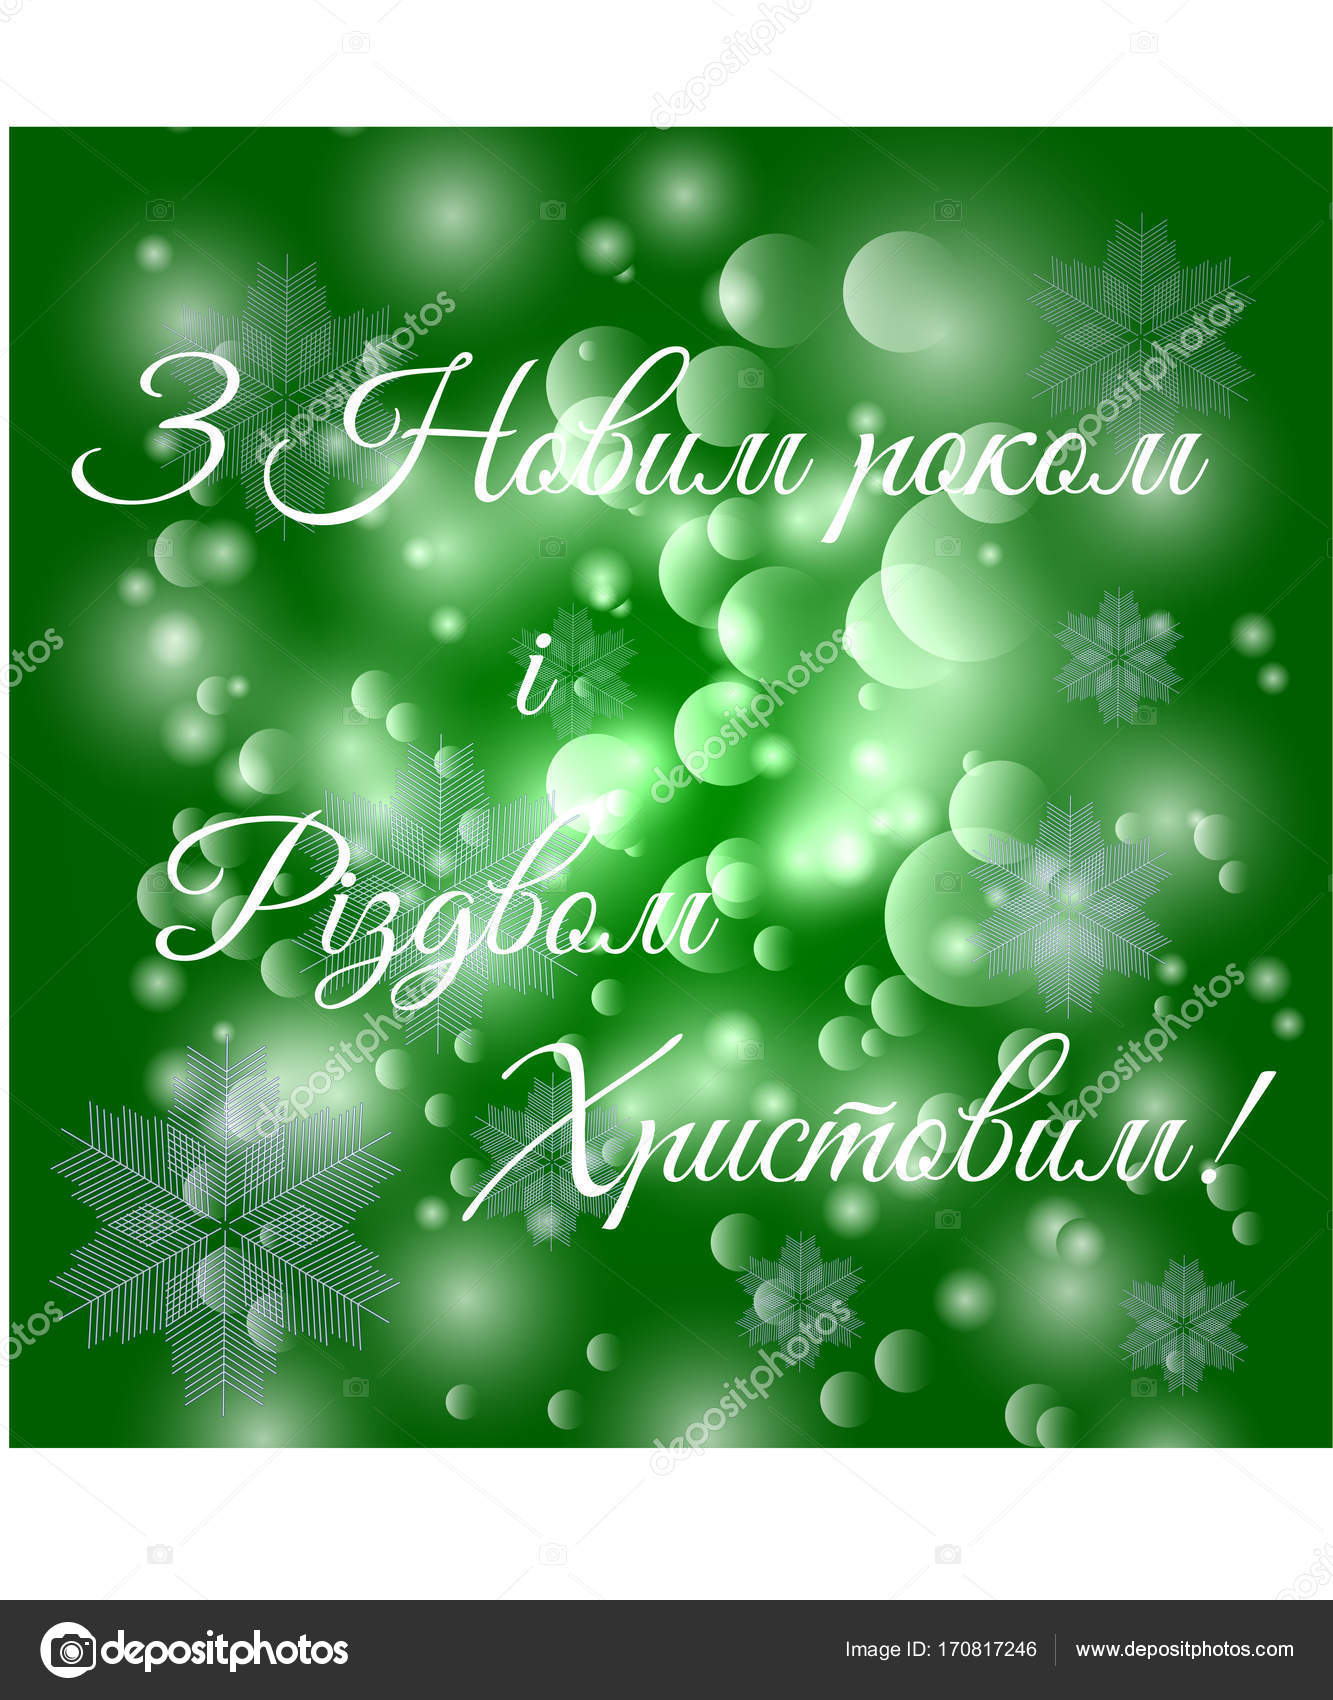 Happy new year and merry christmas in ukrainian stock vector inscription in ukrainian happy new year and merry christmas green christmas background with snow snowflakes christmas greeting card m4hsunfo